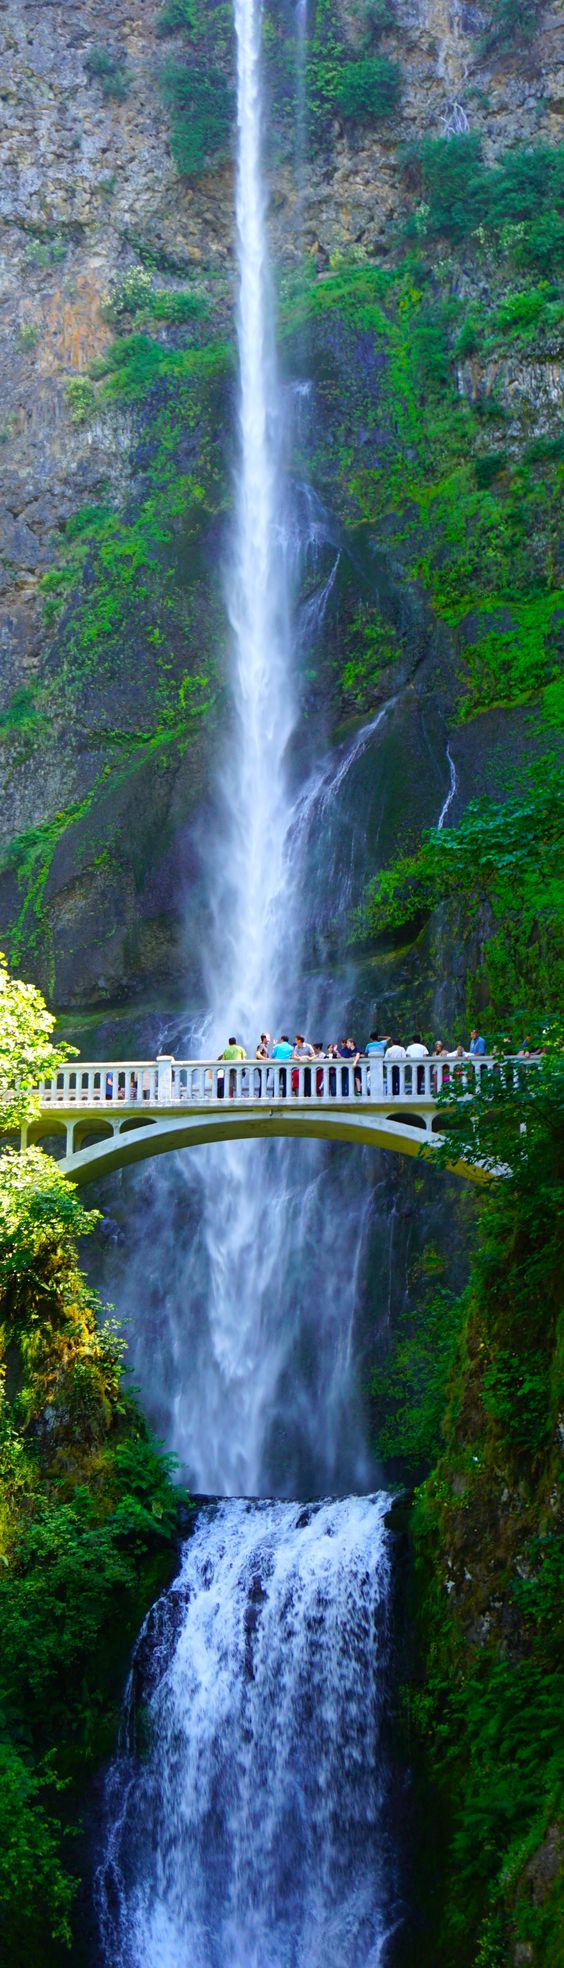 Multnomah  of the beautiful sites close to Portland, OR. Zach and I fell in love with it the first time we saw it 49 years ago.